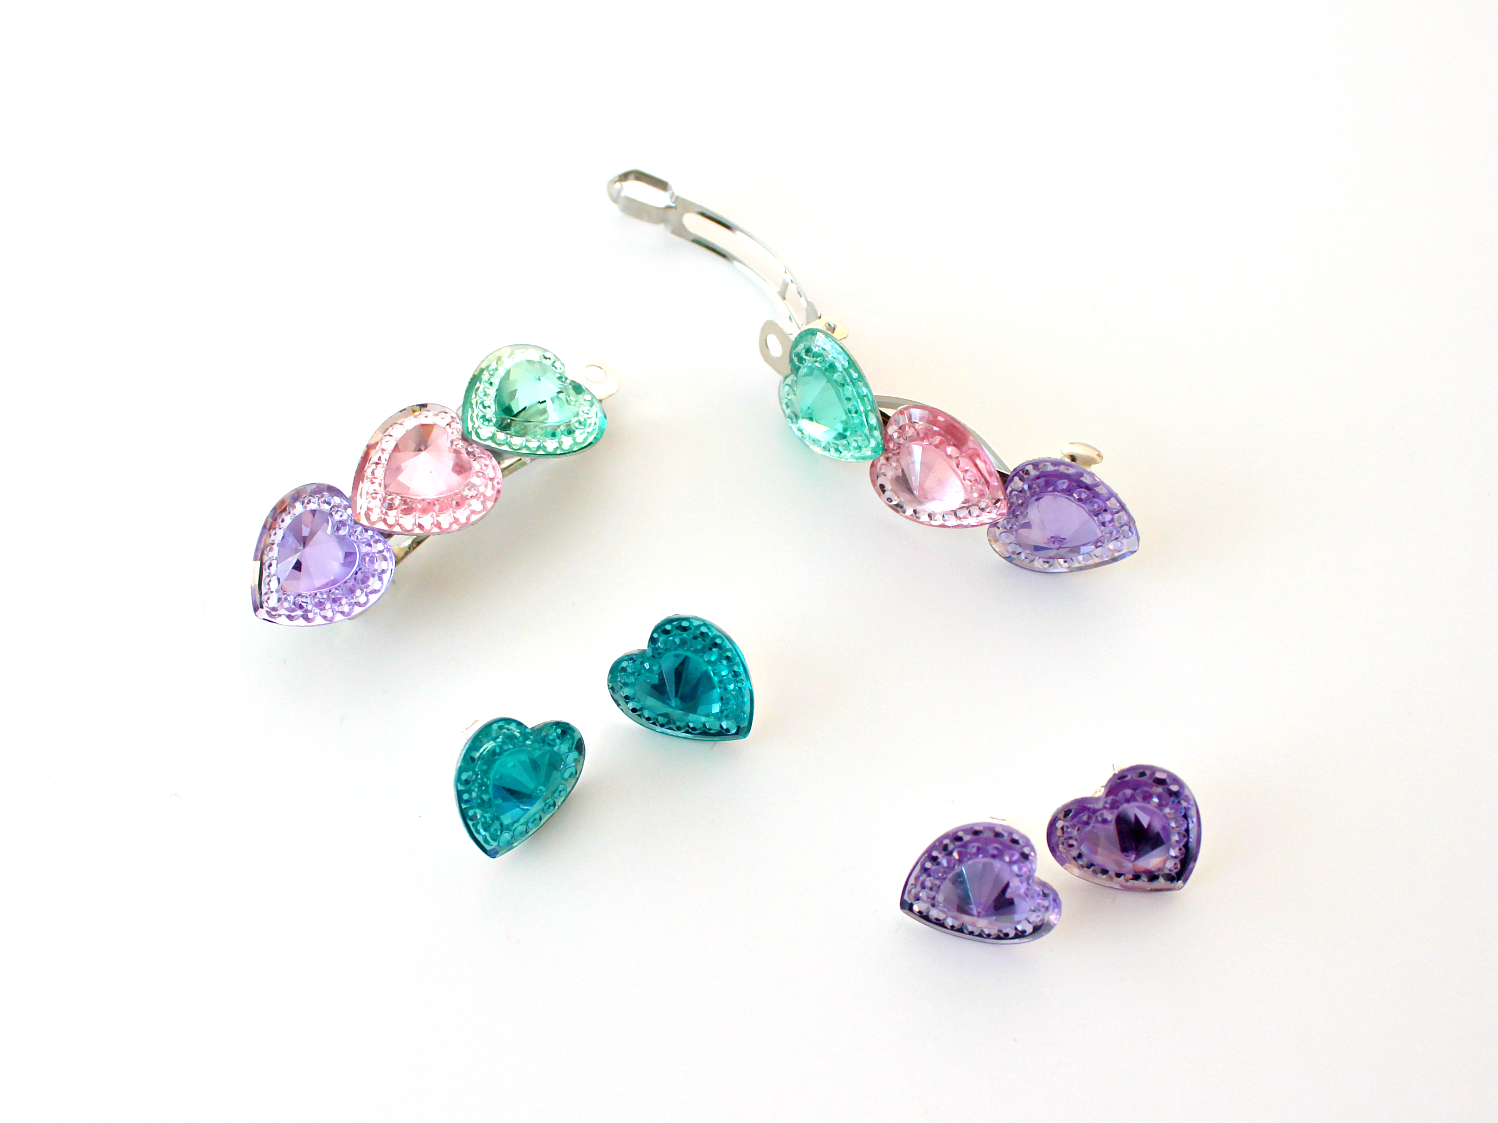 DIY MATCHING HEART EARRINGS & BARRETTES FOR KIDS OR ADULTS